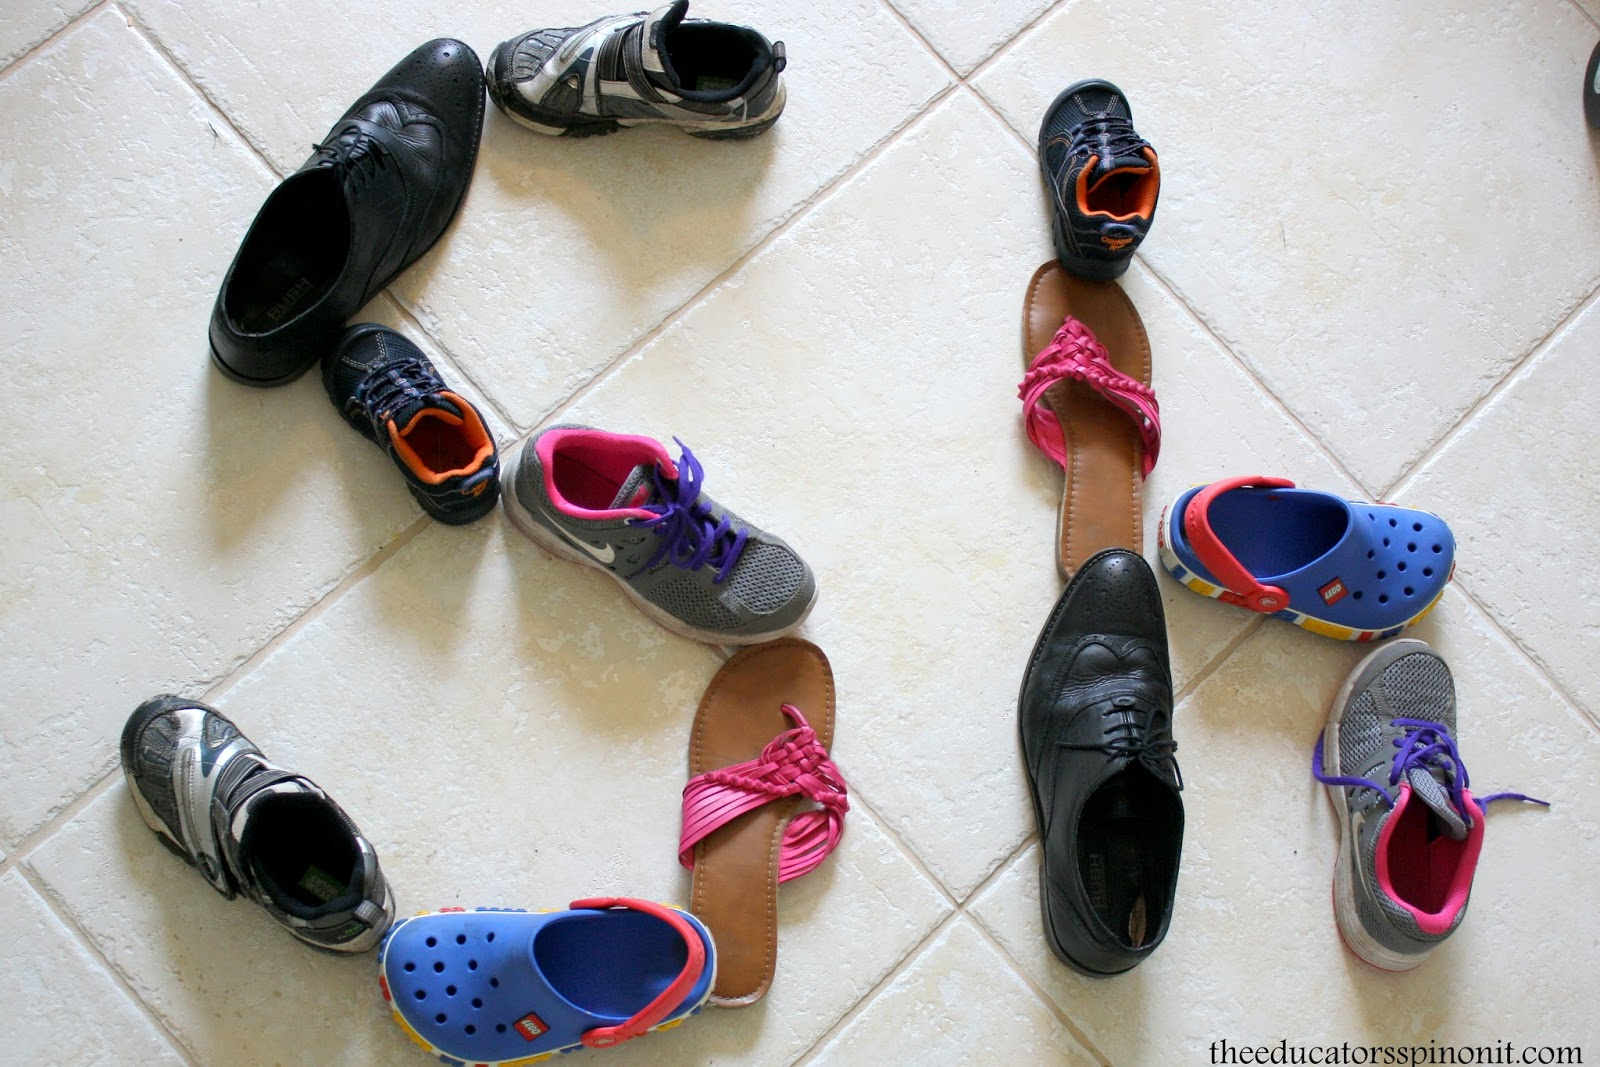 Learn the SH digraph interactive preschool lesson plan with shoes, hands on literacy